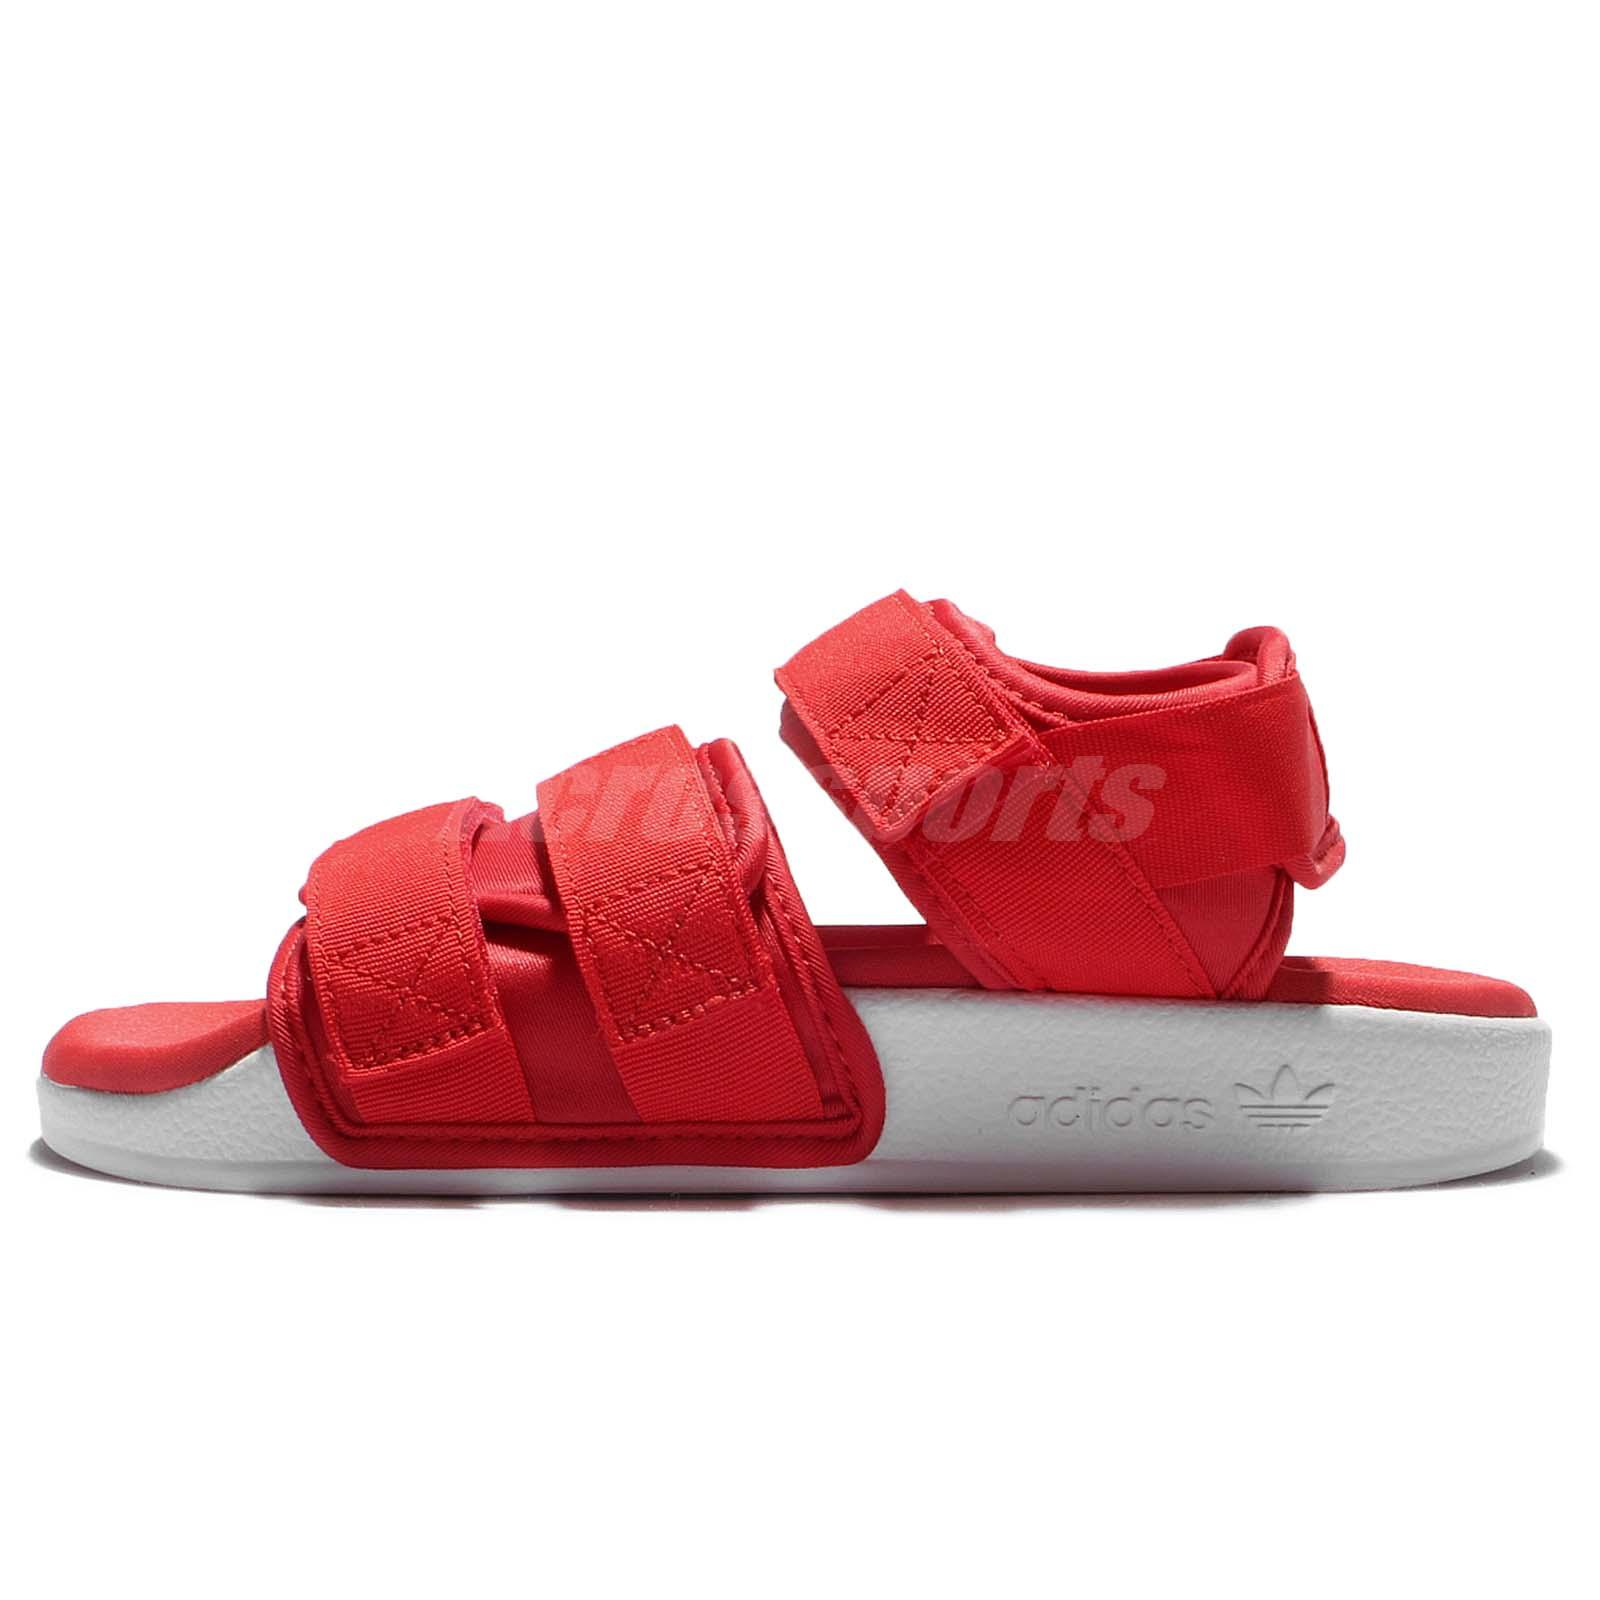 574a37fe74277 Buy adidas adilette sandals red   OFF48% Discounted